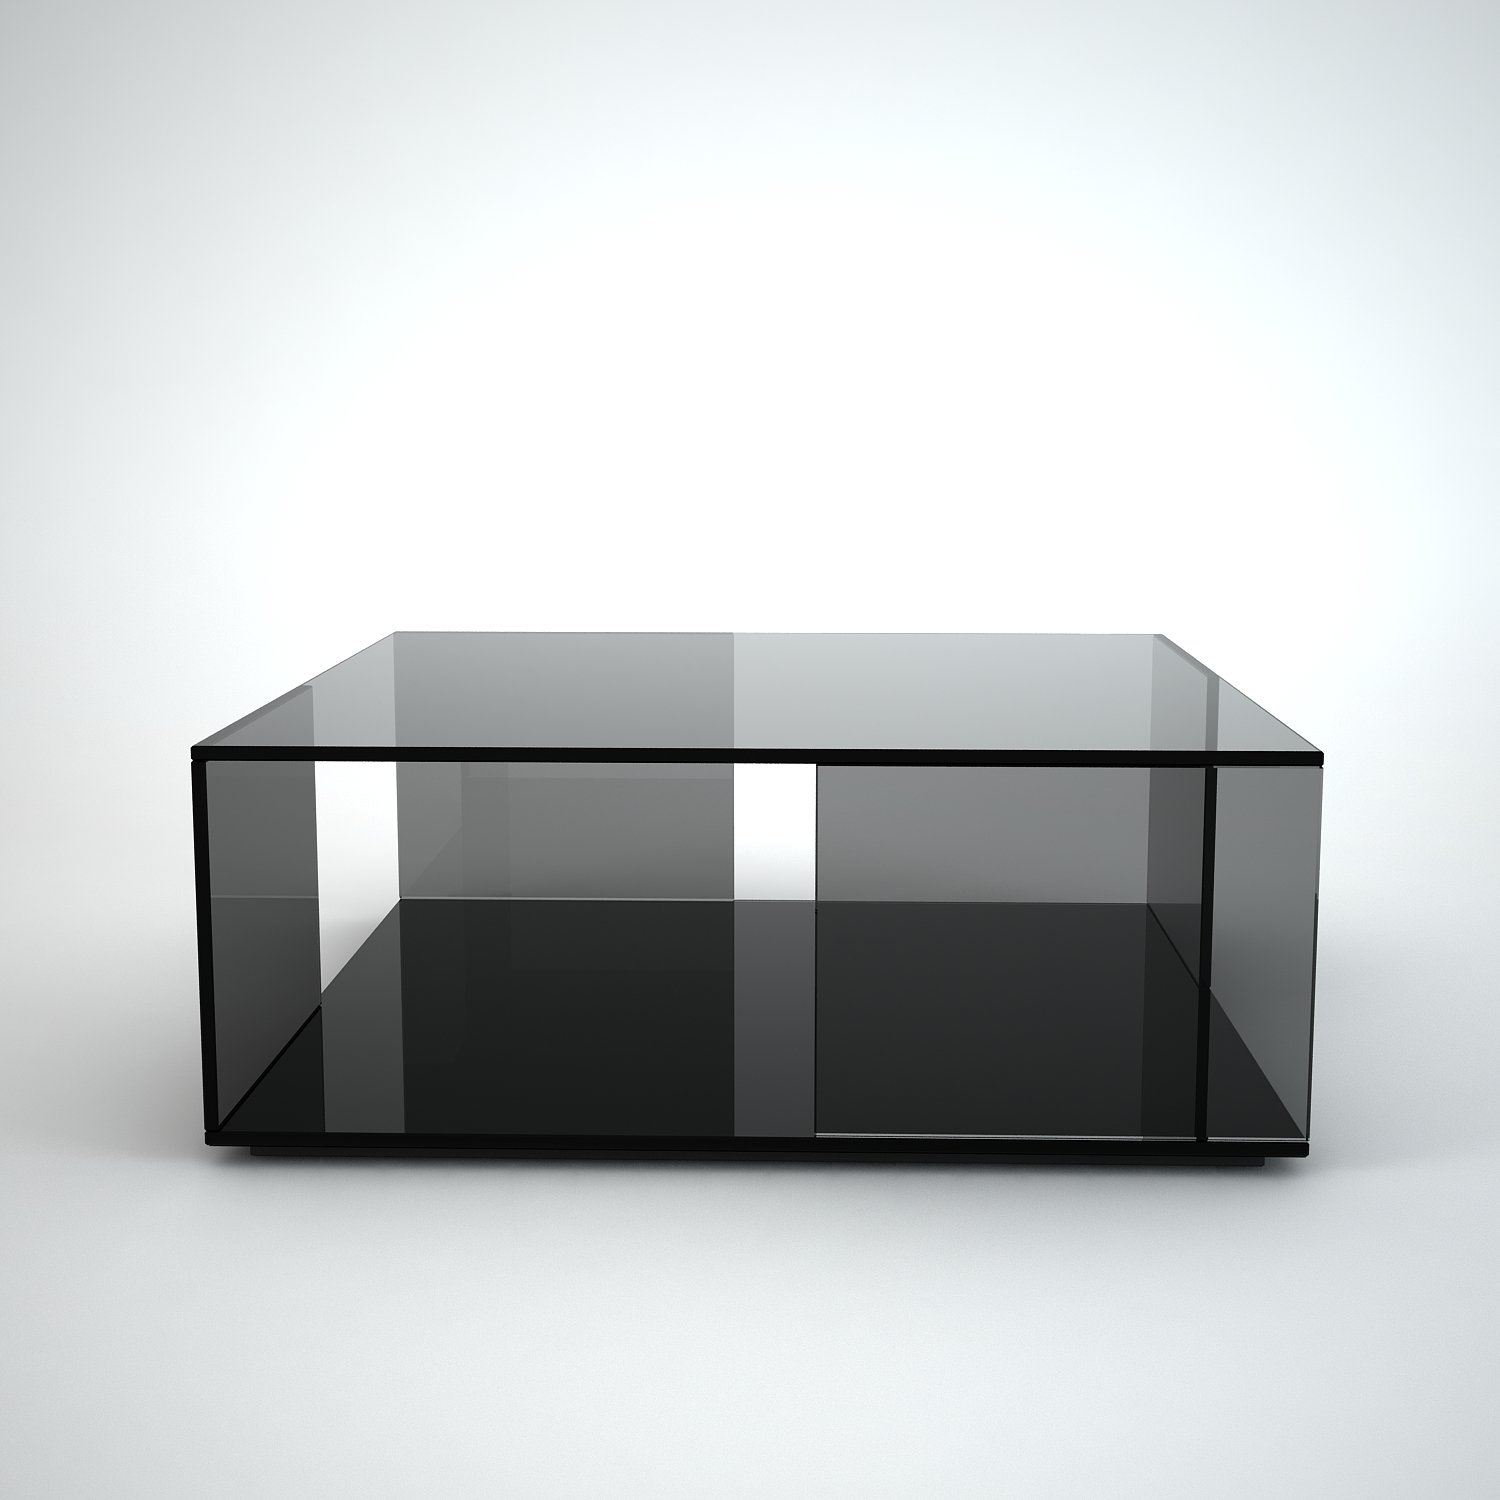 Tifino square grey tint glass coffee table by klarity klarity glass furniture Black coffee table with glass